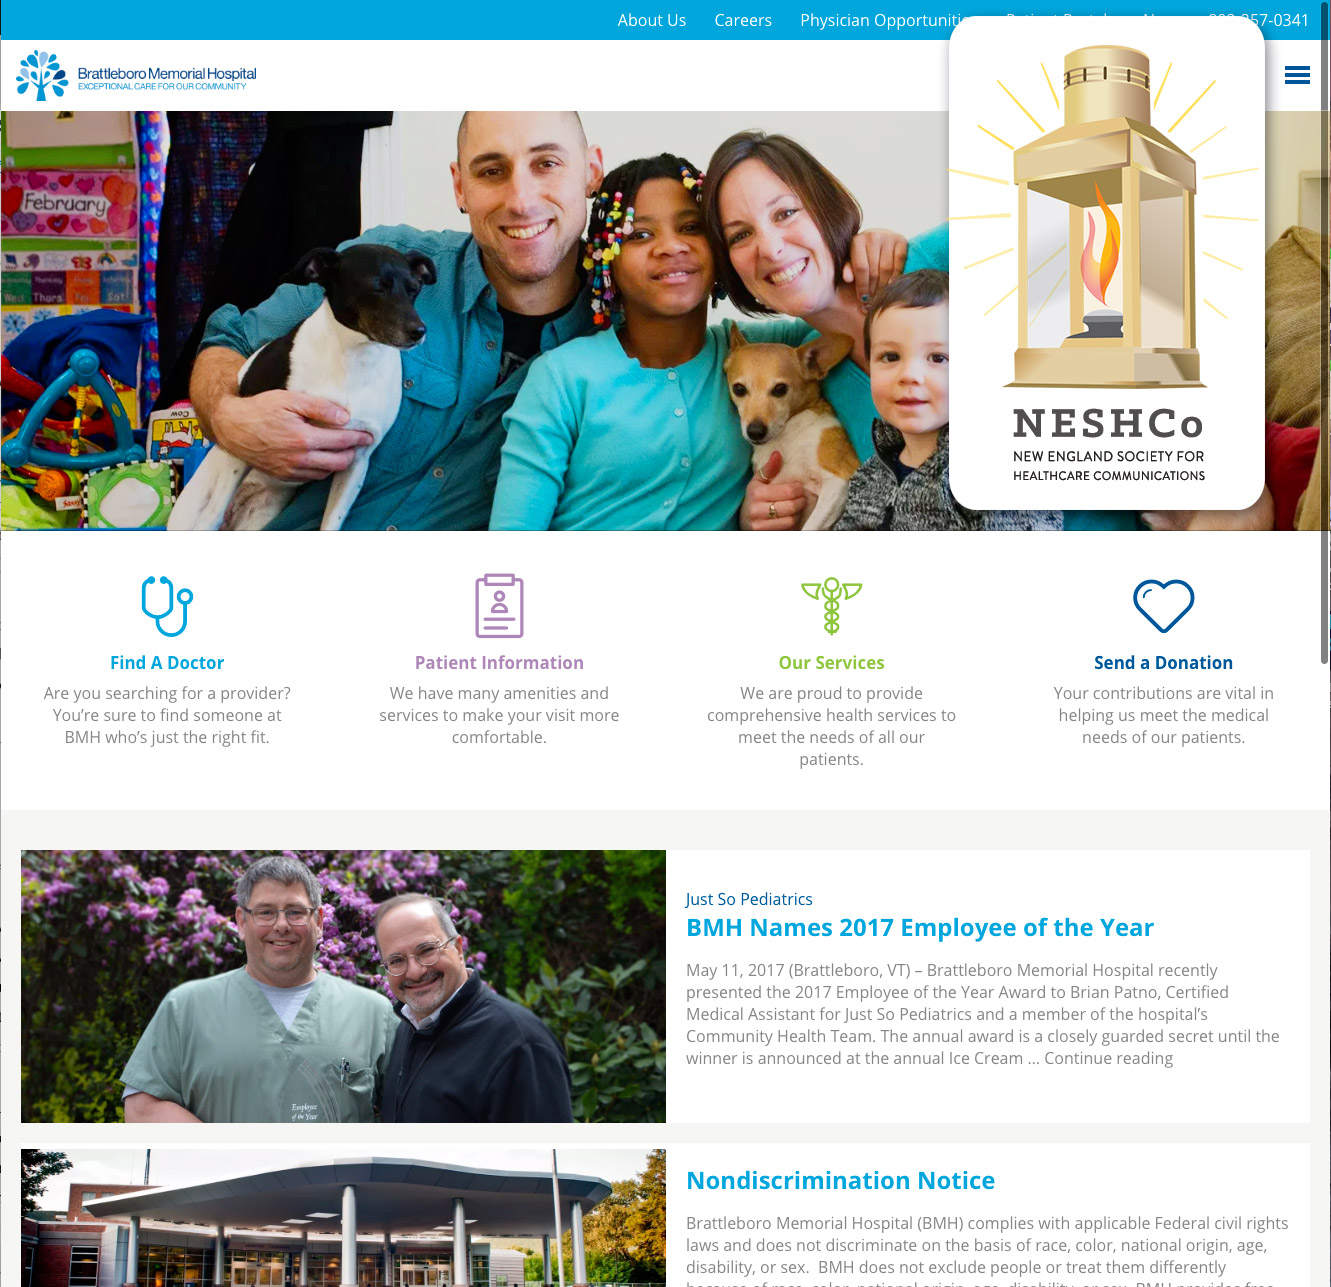 Brattleboro Memorial Hospigal Website Design wins Gold!